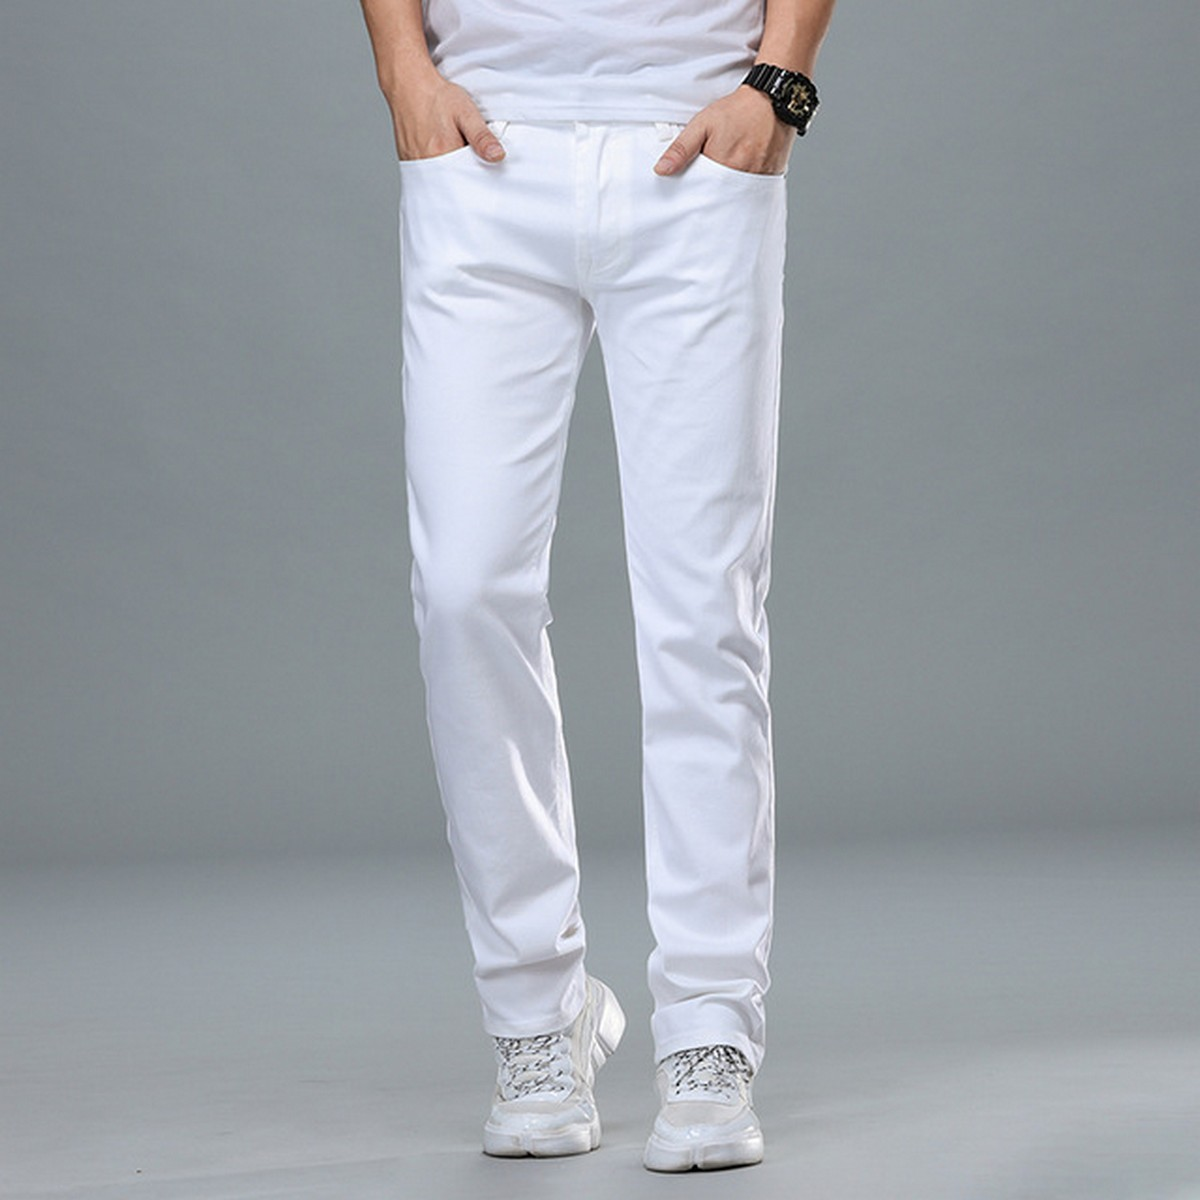 Cotton Jeans Pants for Men in White color and Decent Fabric